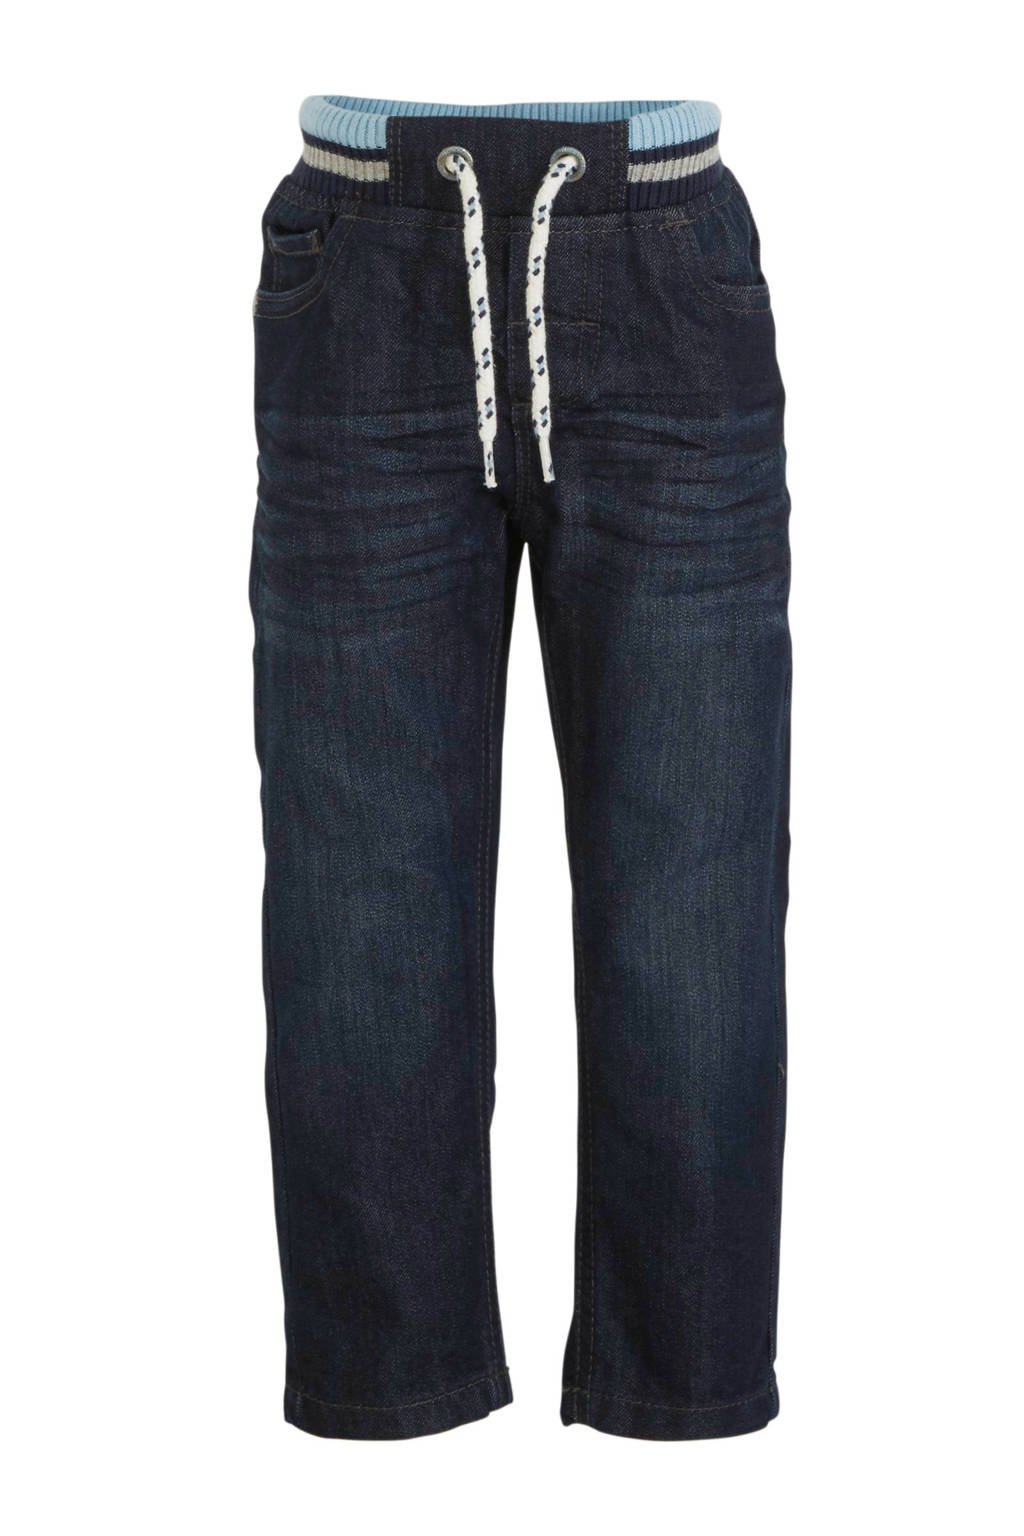 C&A Palomino straight fit broek dark denim, Dark denim